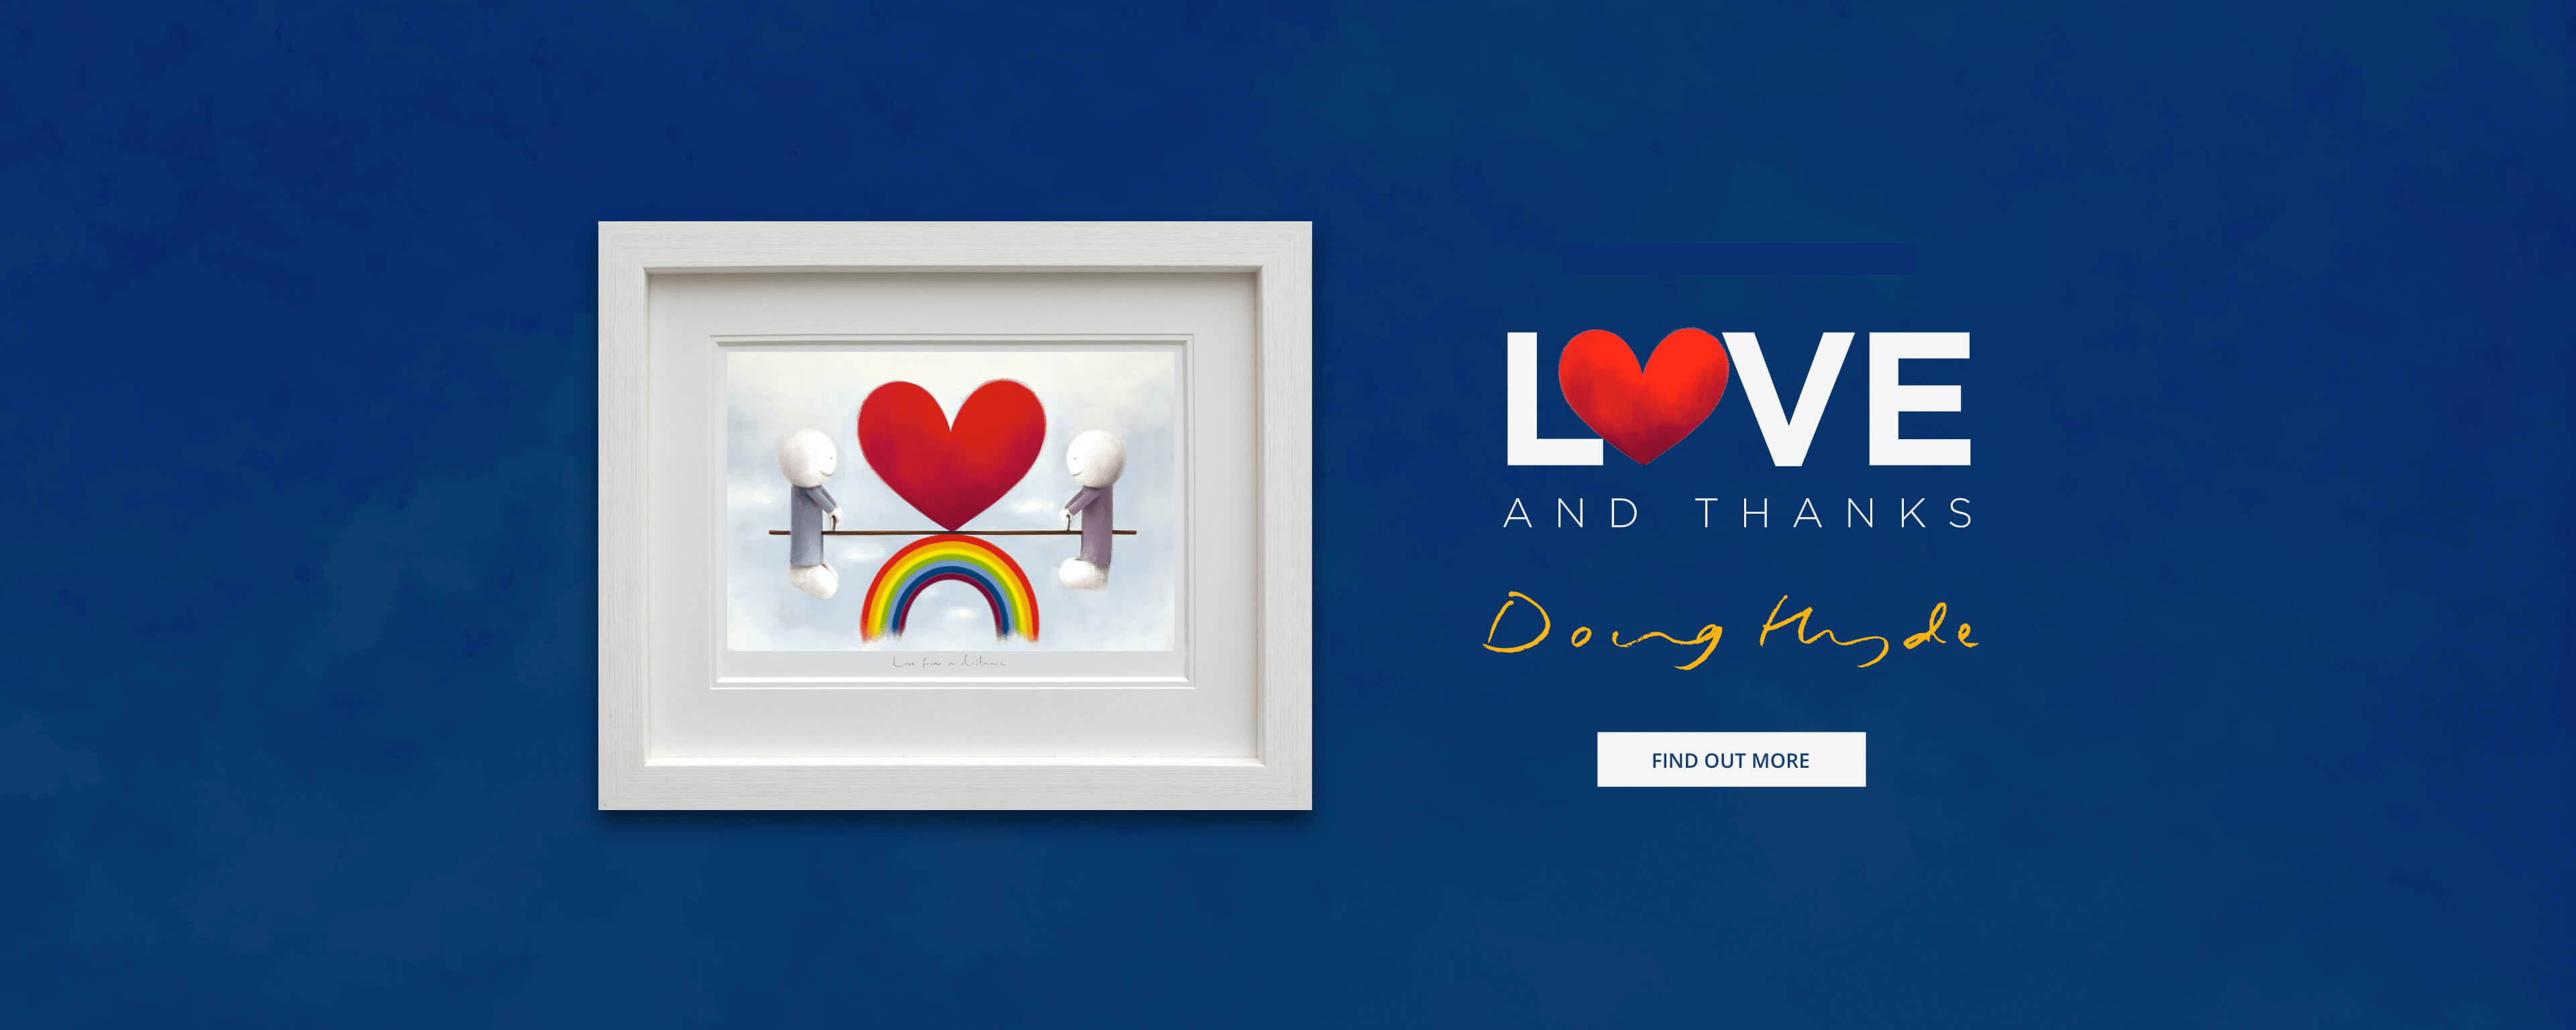 Doug Hyde – Love and Thanks